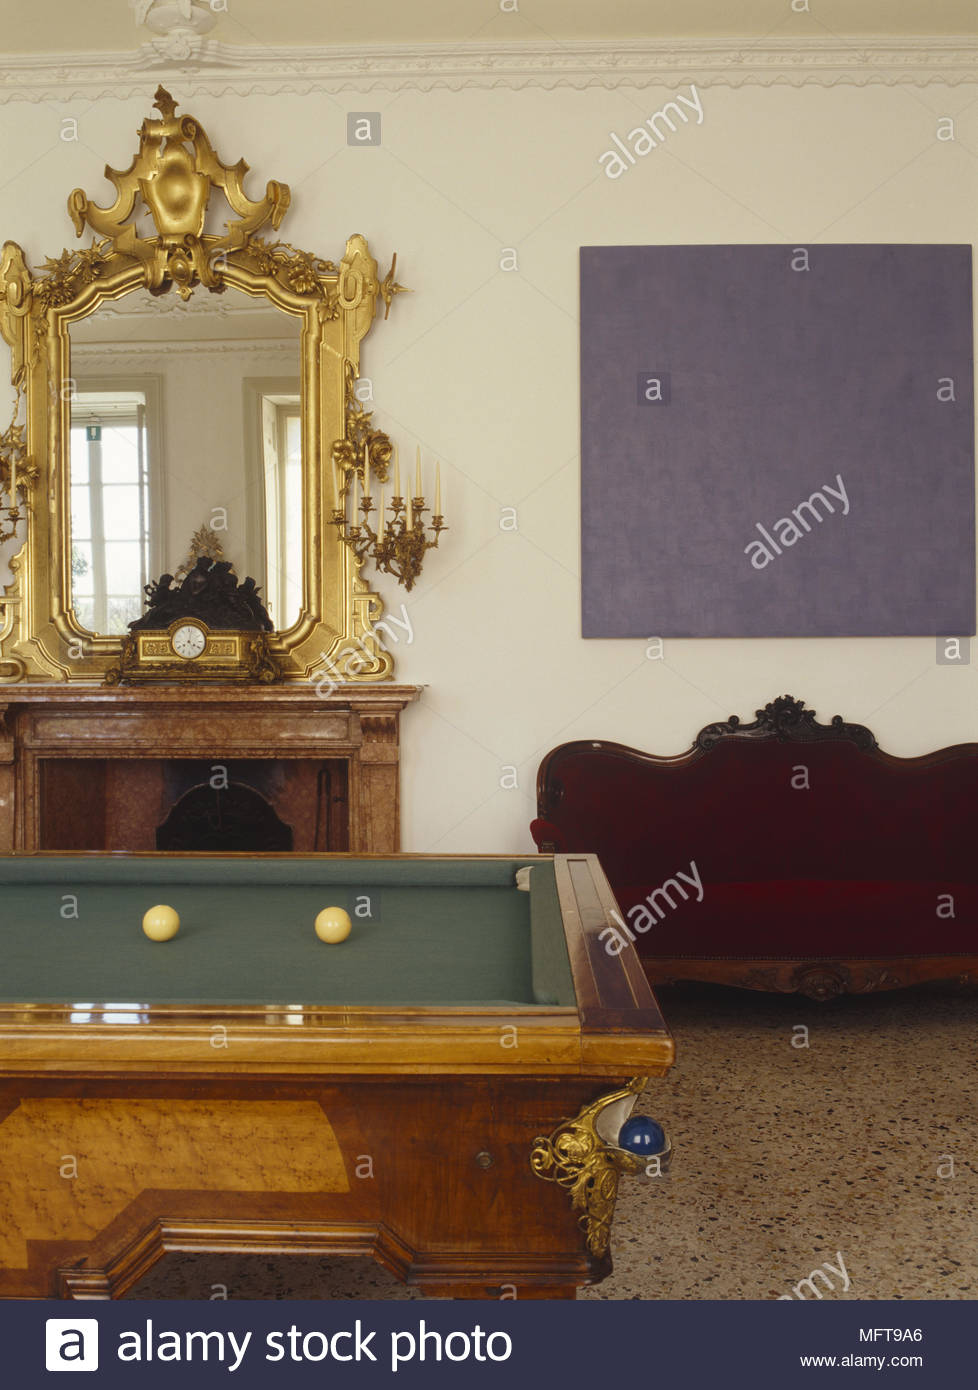 Peachy Snooker Table In Front Of Gilt Mirror Over Fireplace Stock Download Free Architecture Designs Viewormadebymaigaardcom